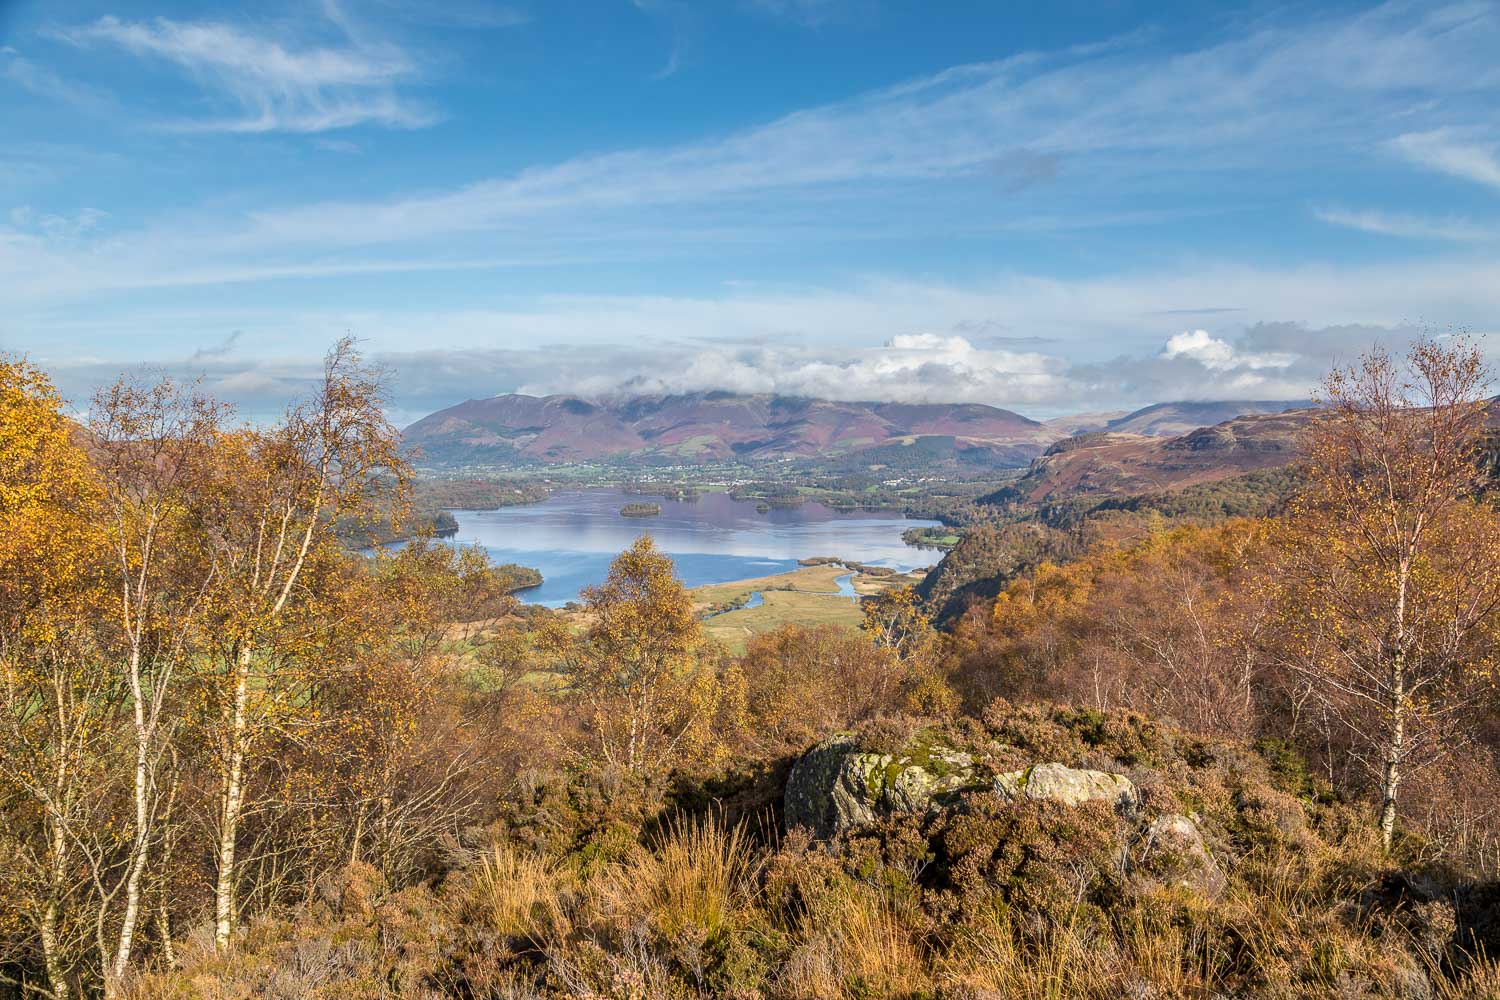 King's How, Derwent Water, Skiddaw